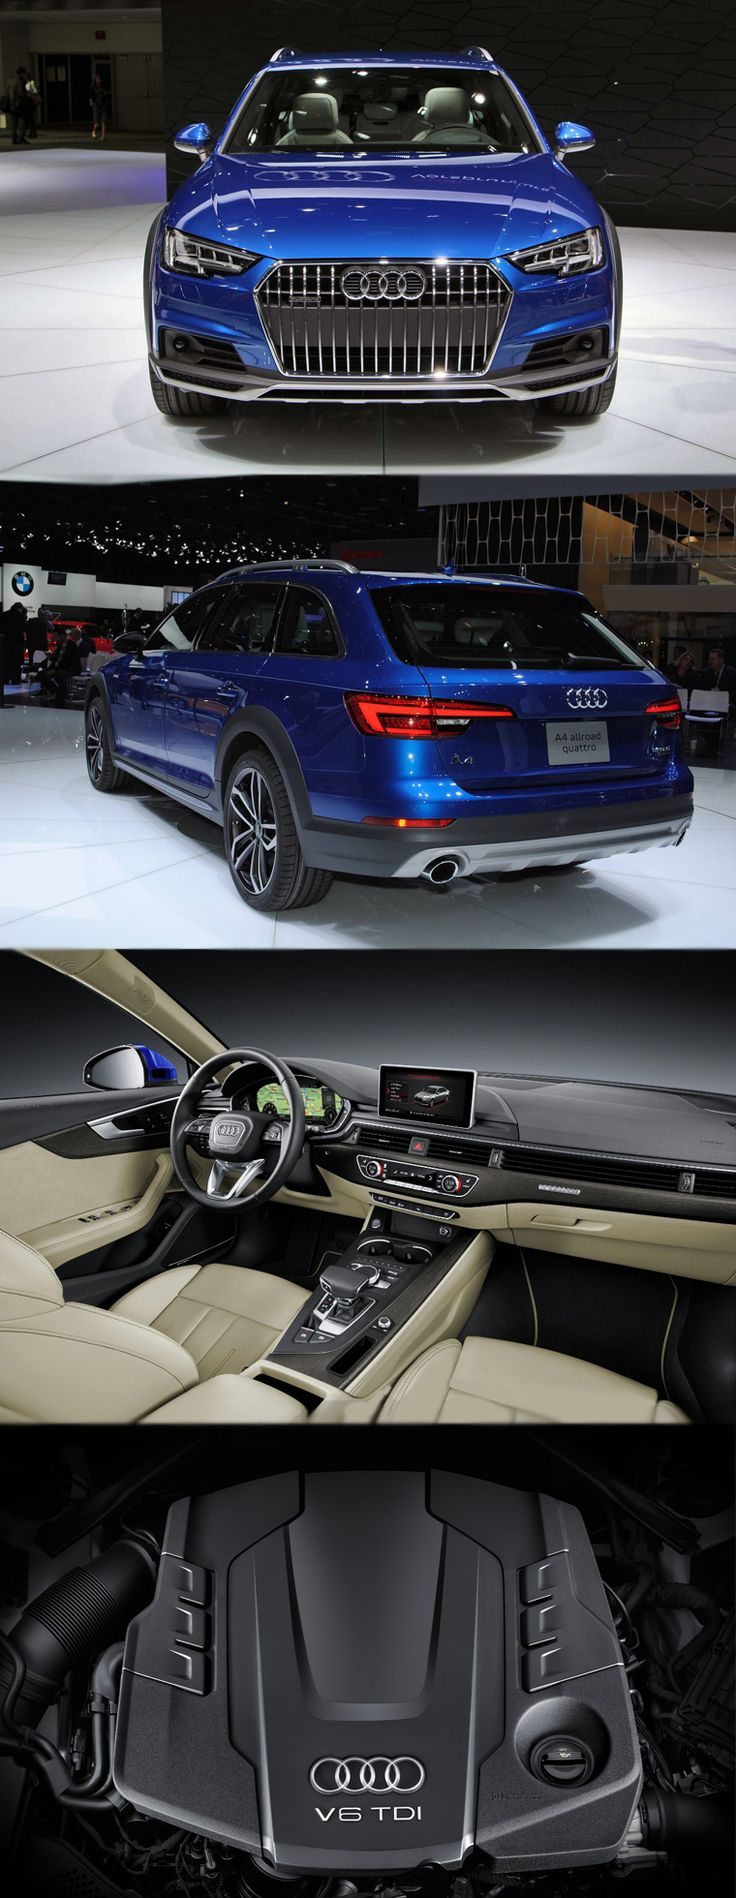 Meet the Off-Roading Cousin of A4 Avant! It's Audi A4 Allroad Get more details at: http://www.globalengines.co.uk/blog/meet-off-roading-cousin-a4-avant-audi-a4-allroad/